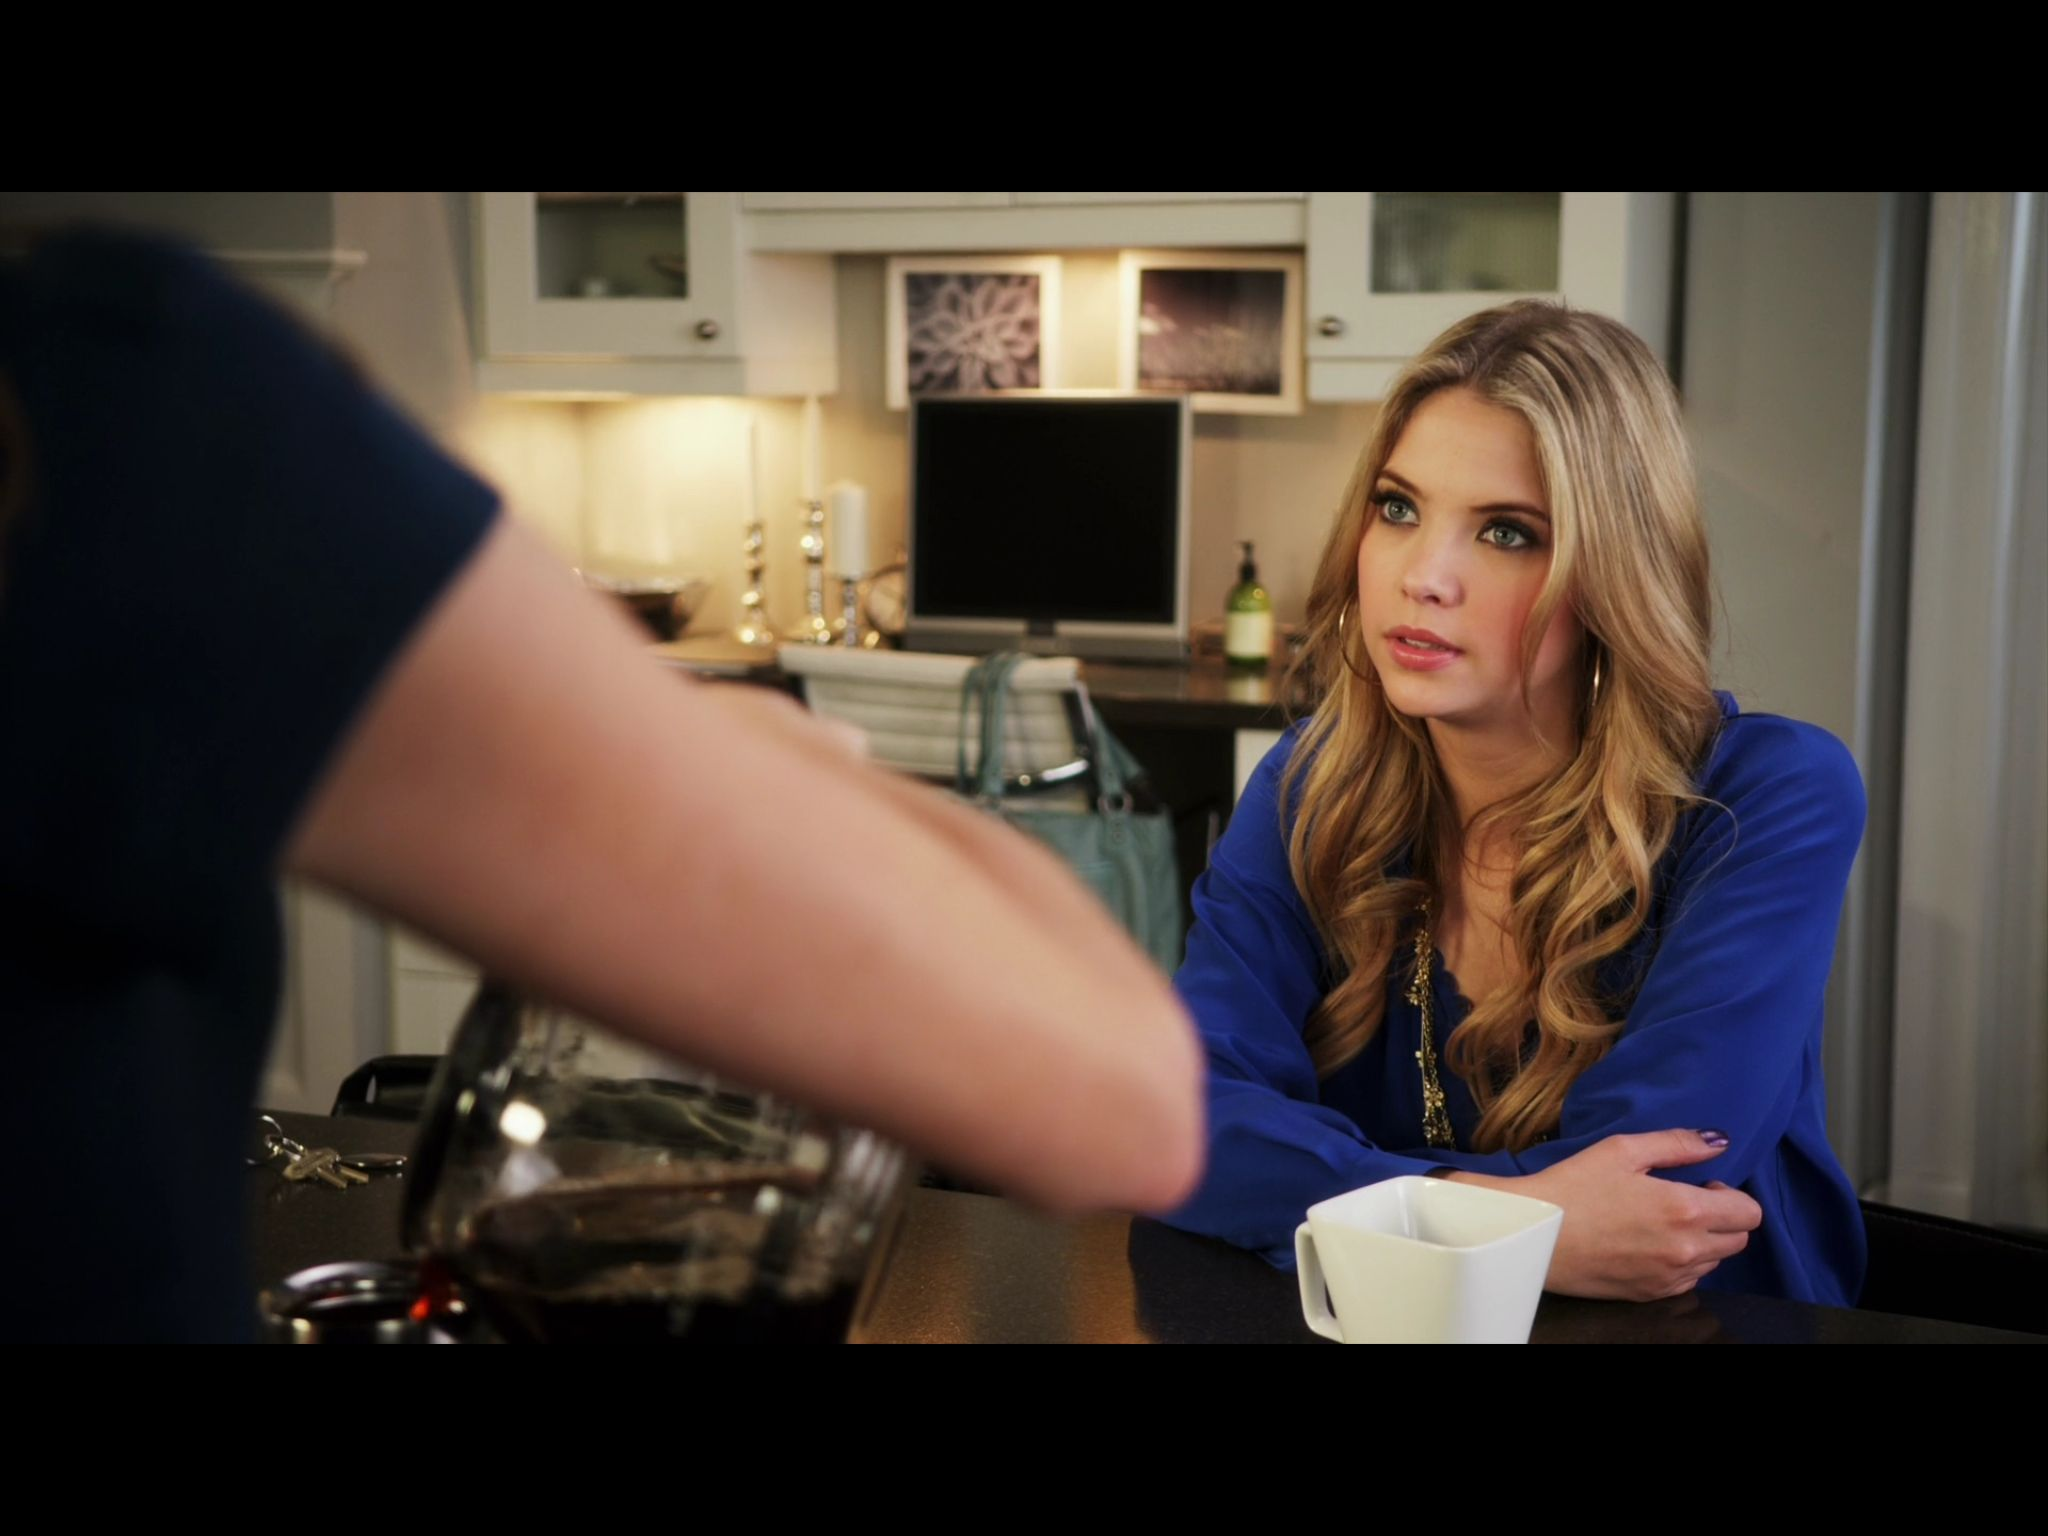 Related spencer hastings living room hanna marin kitchen - 1x8 Hanna At Home In The Kitchen Livingroom With Her Mom